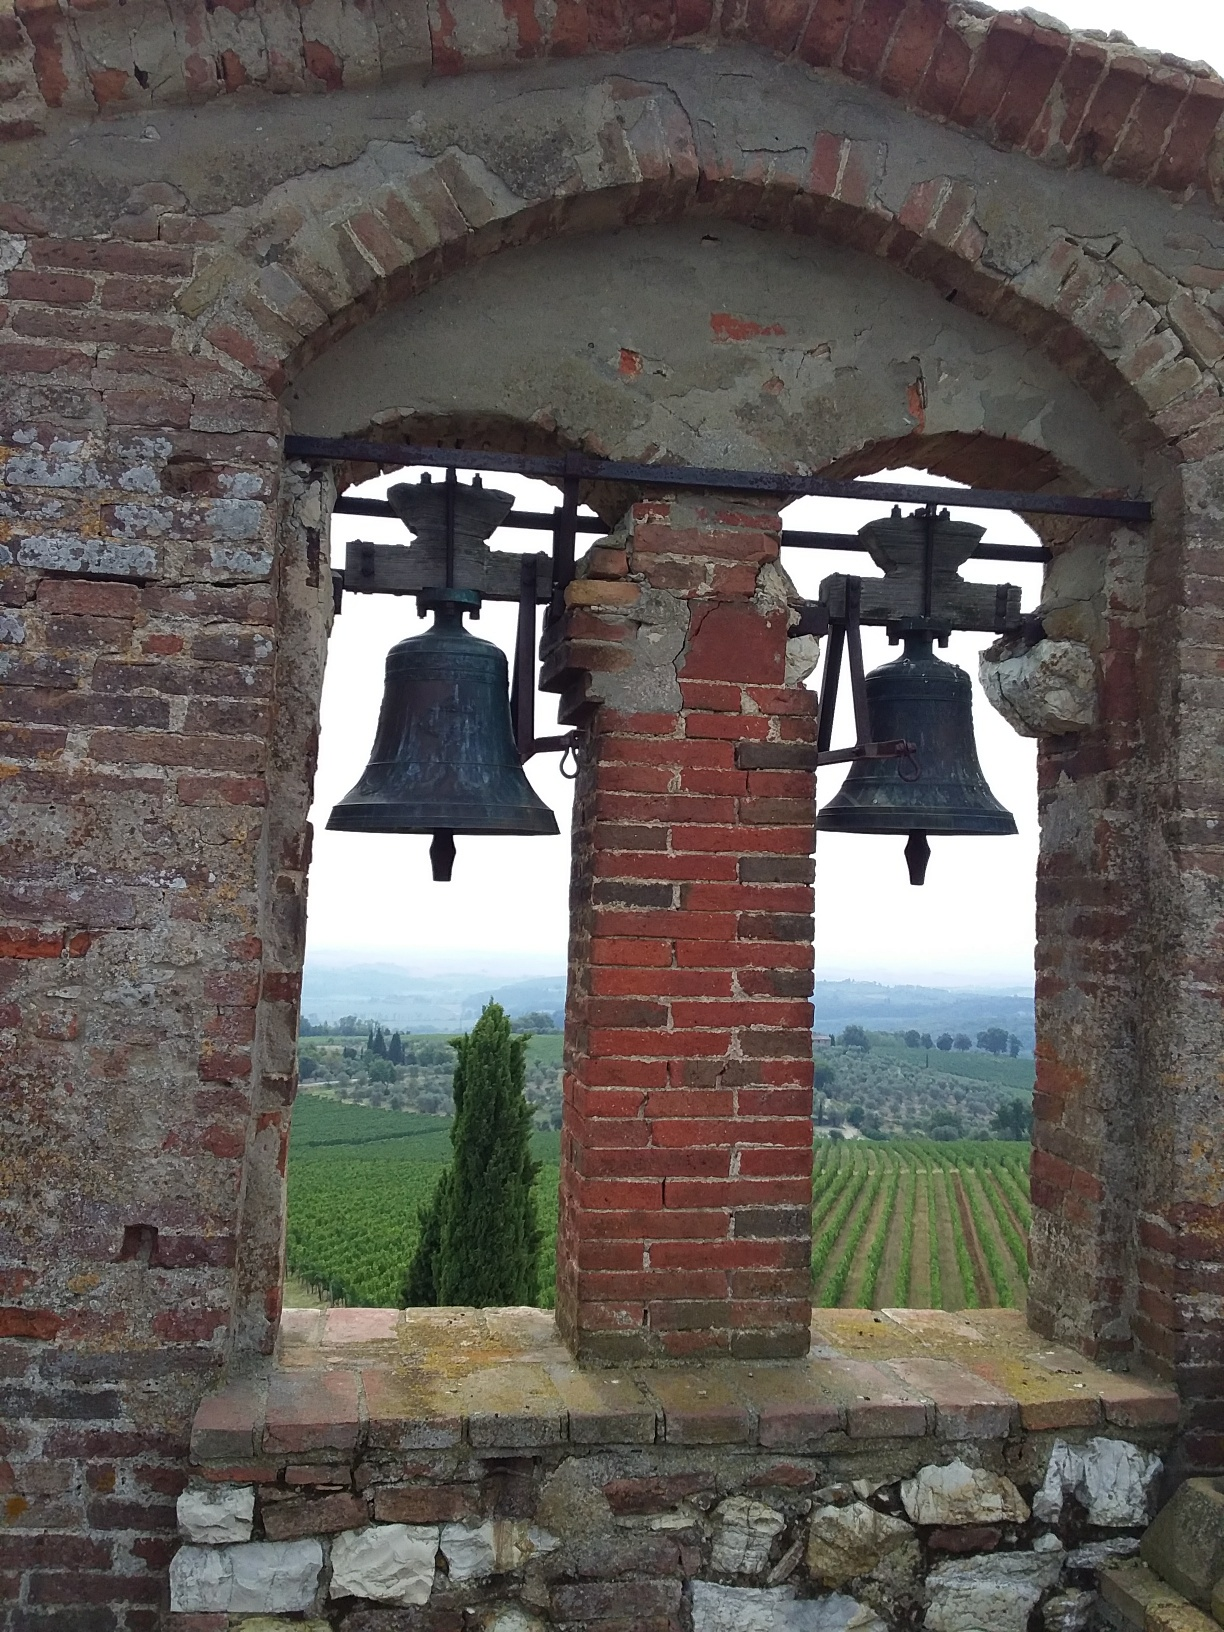 The vineyards of the Chianti Classico Region, as seen from the bell tower at Canonica a Cerreto Winery